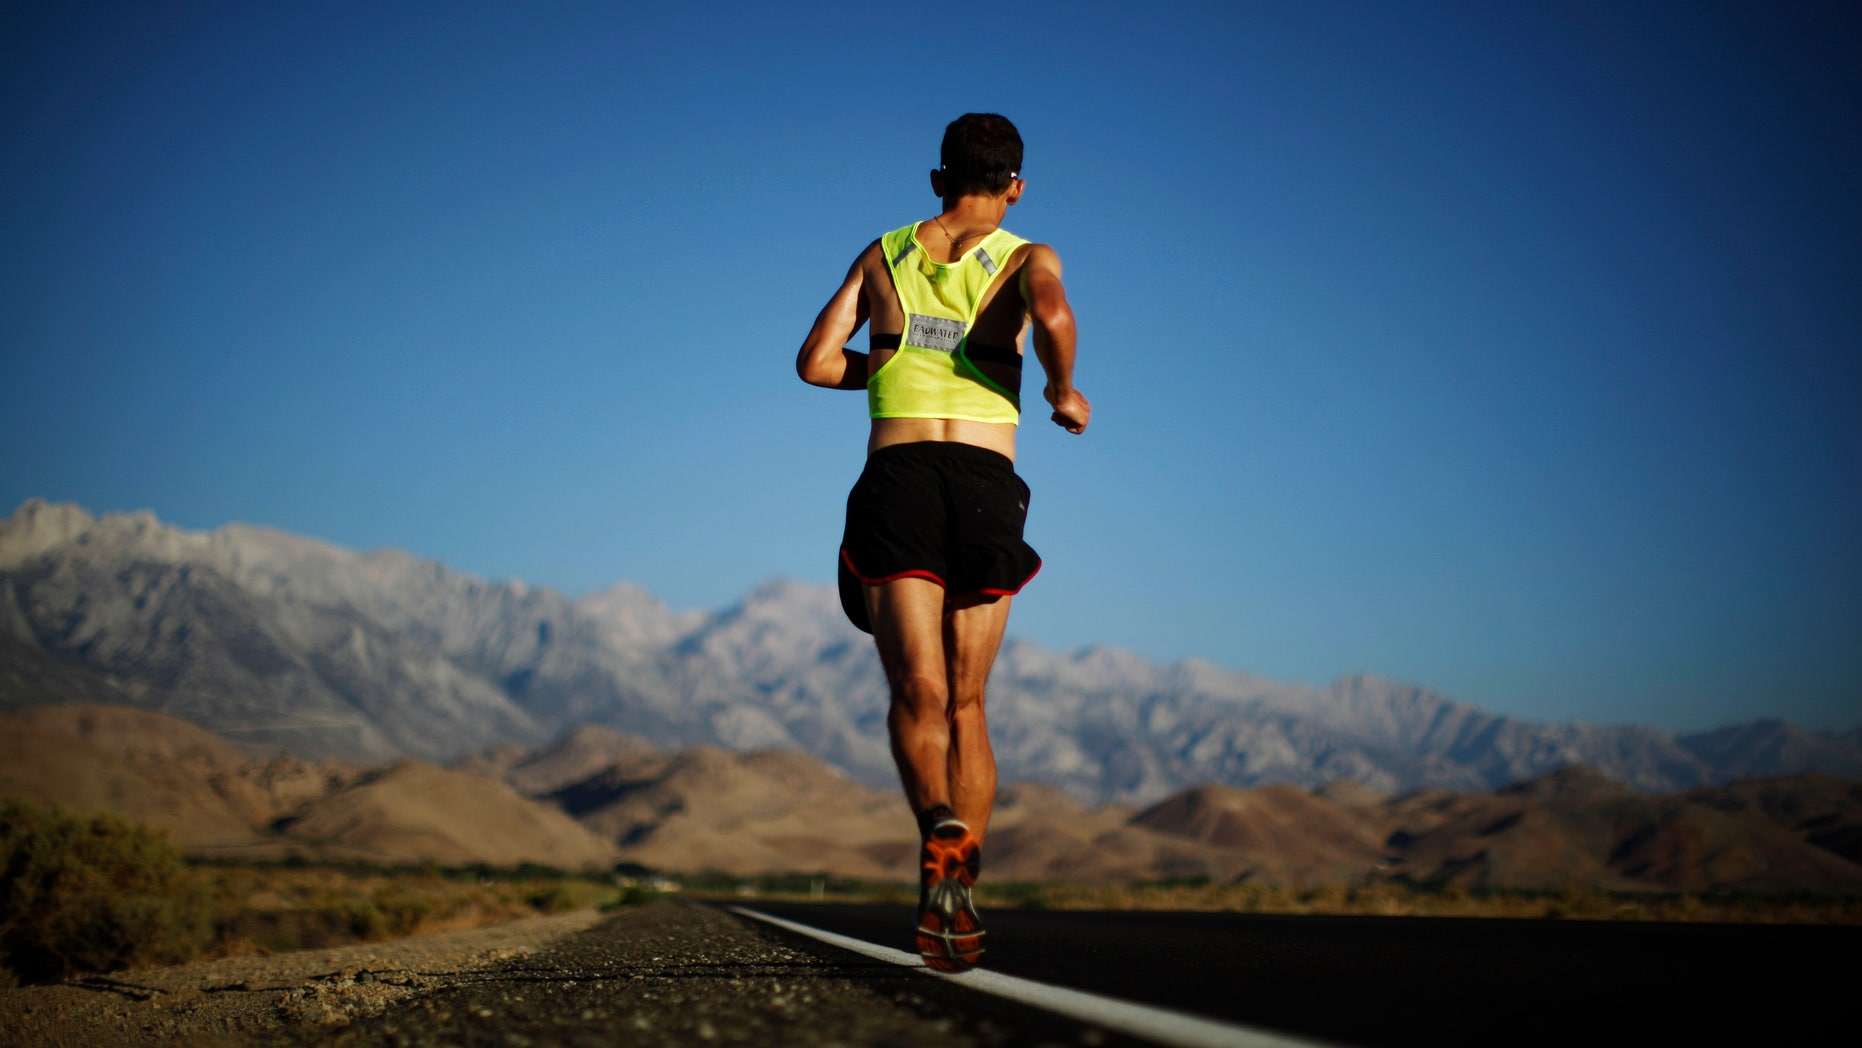 Carlos Alberto Gomes De Sa of Portugal runs on his way to winning the Badwater Ultramarathon on July 16, 2013. The 135-mile race goes from Death Valley to Mount Whitney, California in temperatures which can reach 130 degrees Fahrenheit.  (REUTERS/Lucy Nicholson)